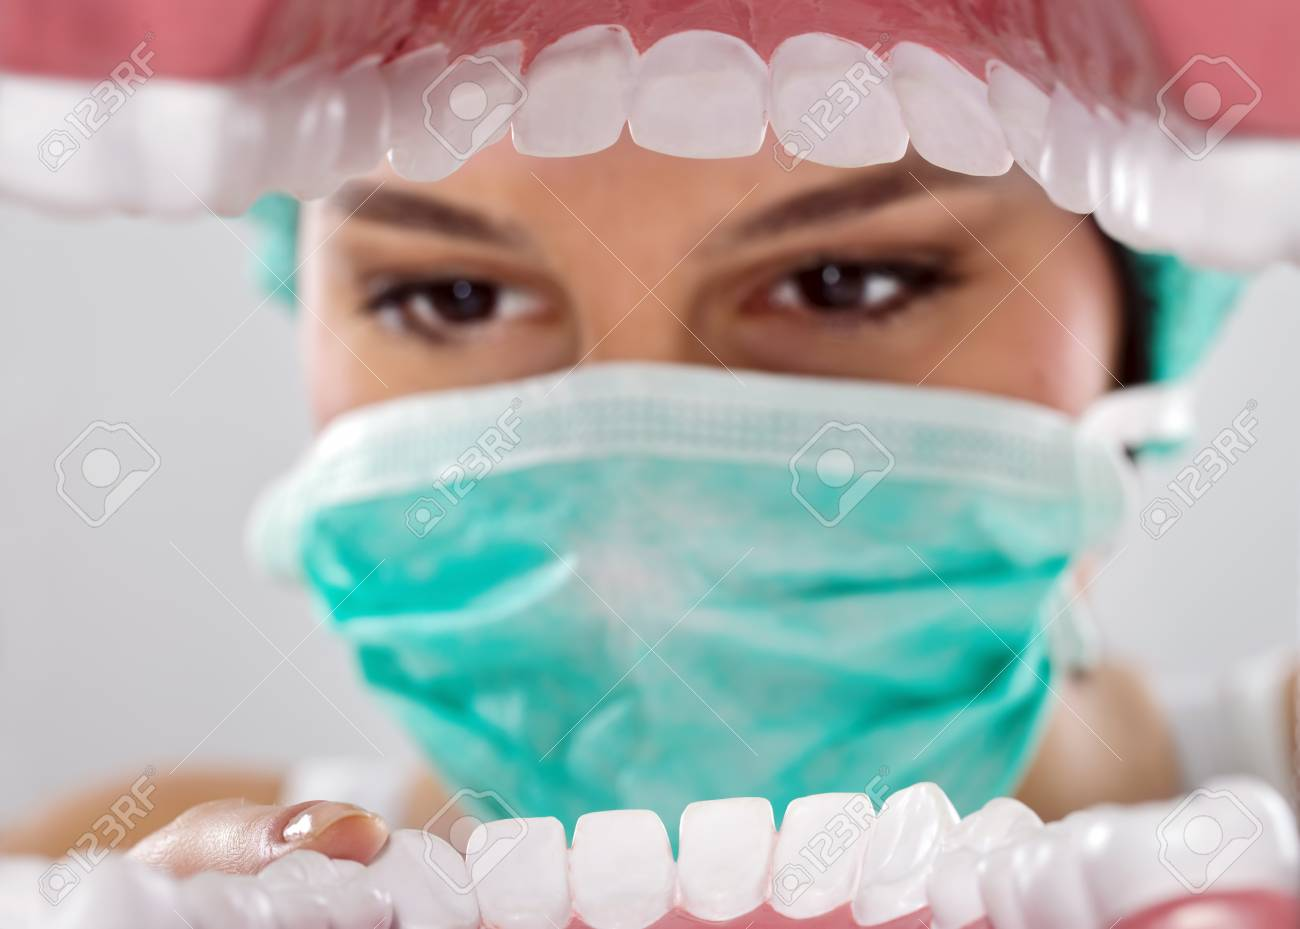 Patient's mouth being inspected by dentist Stock Photo - 12781204